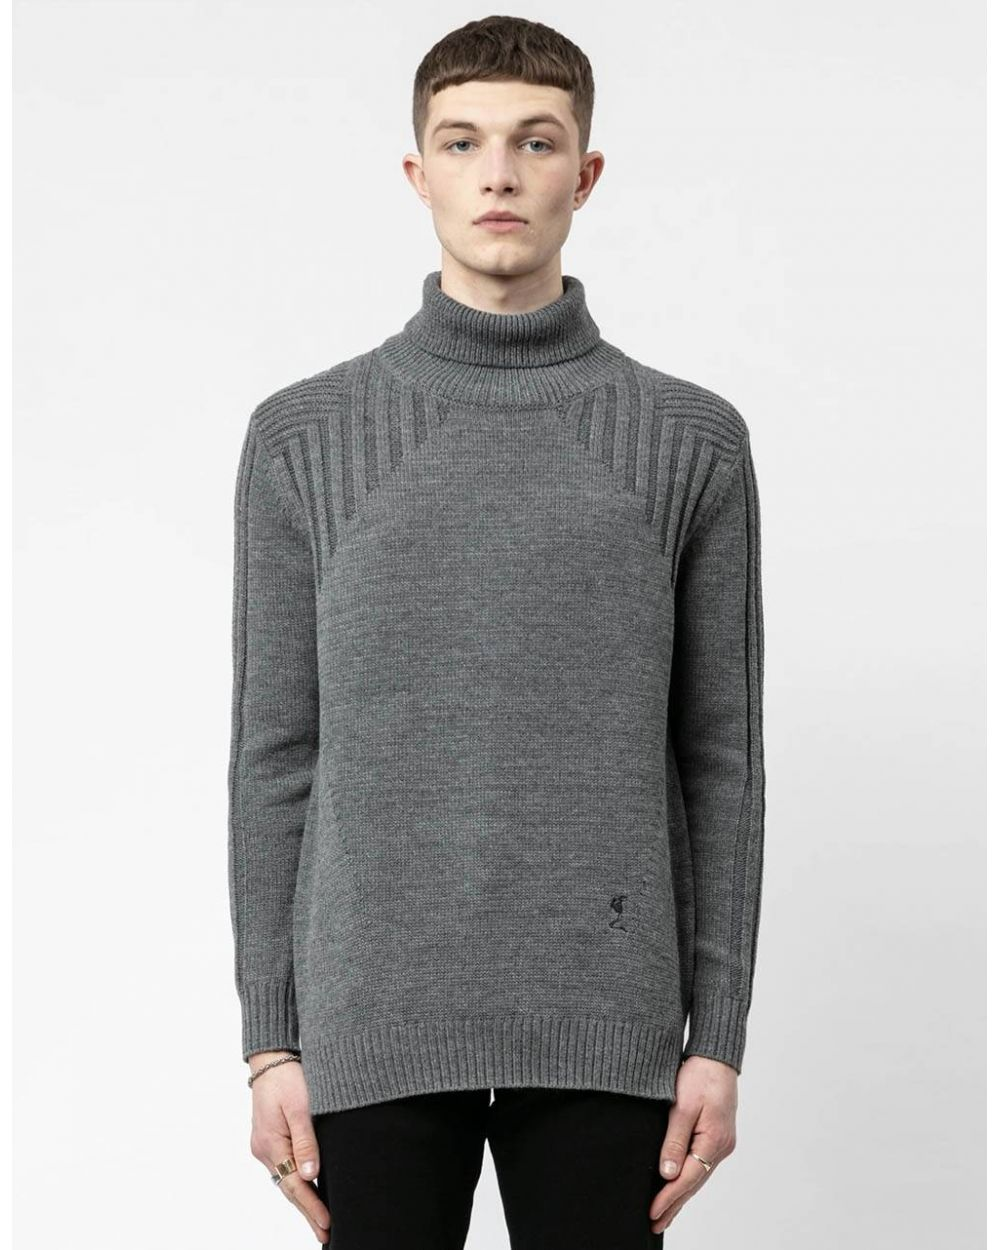 Religion UK Crusade knit jumper - grey Religion Knitwear 120,00 €